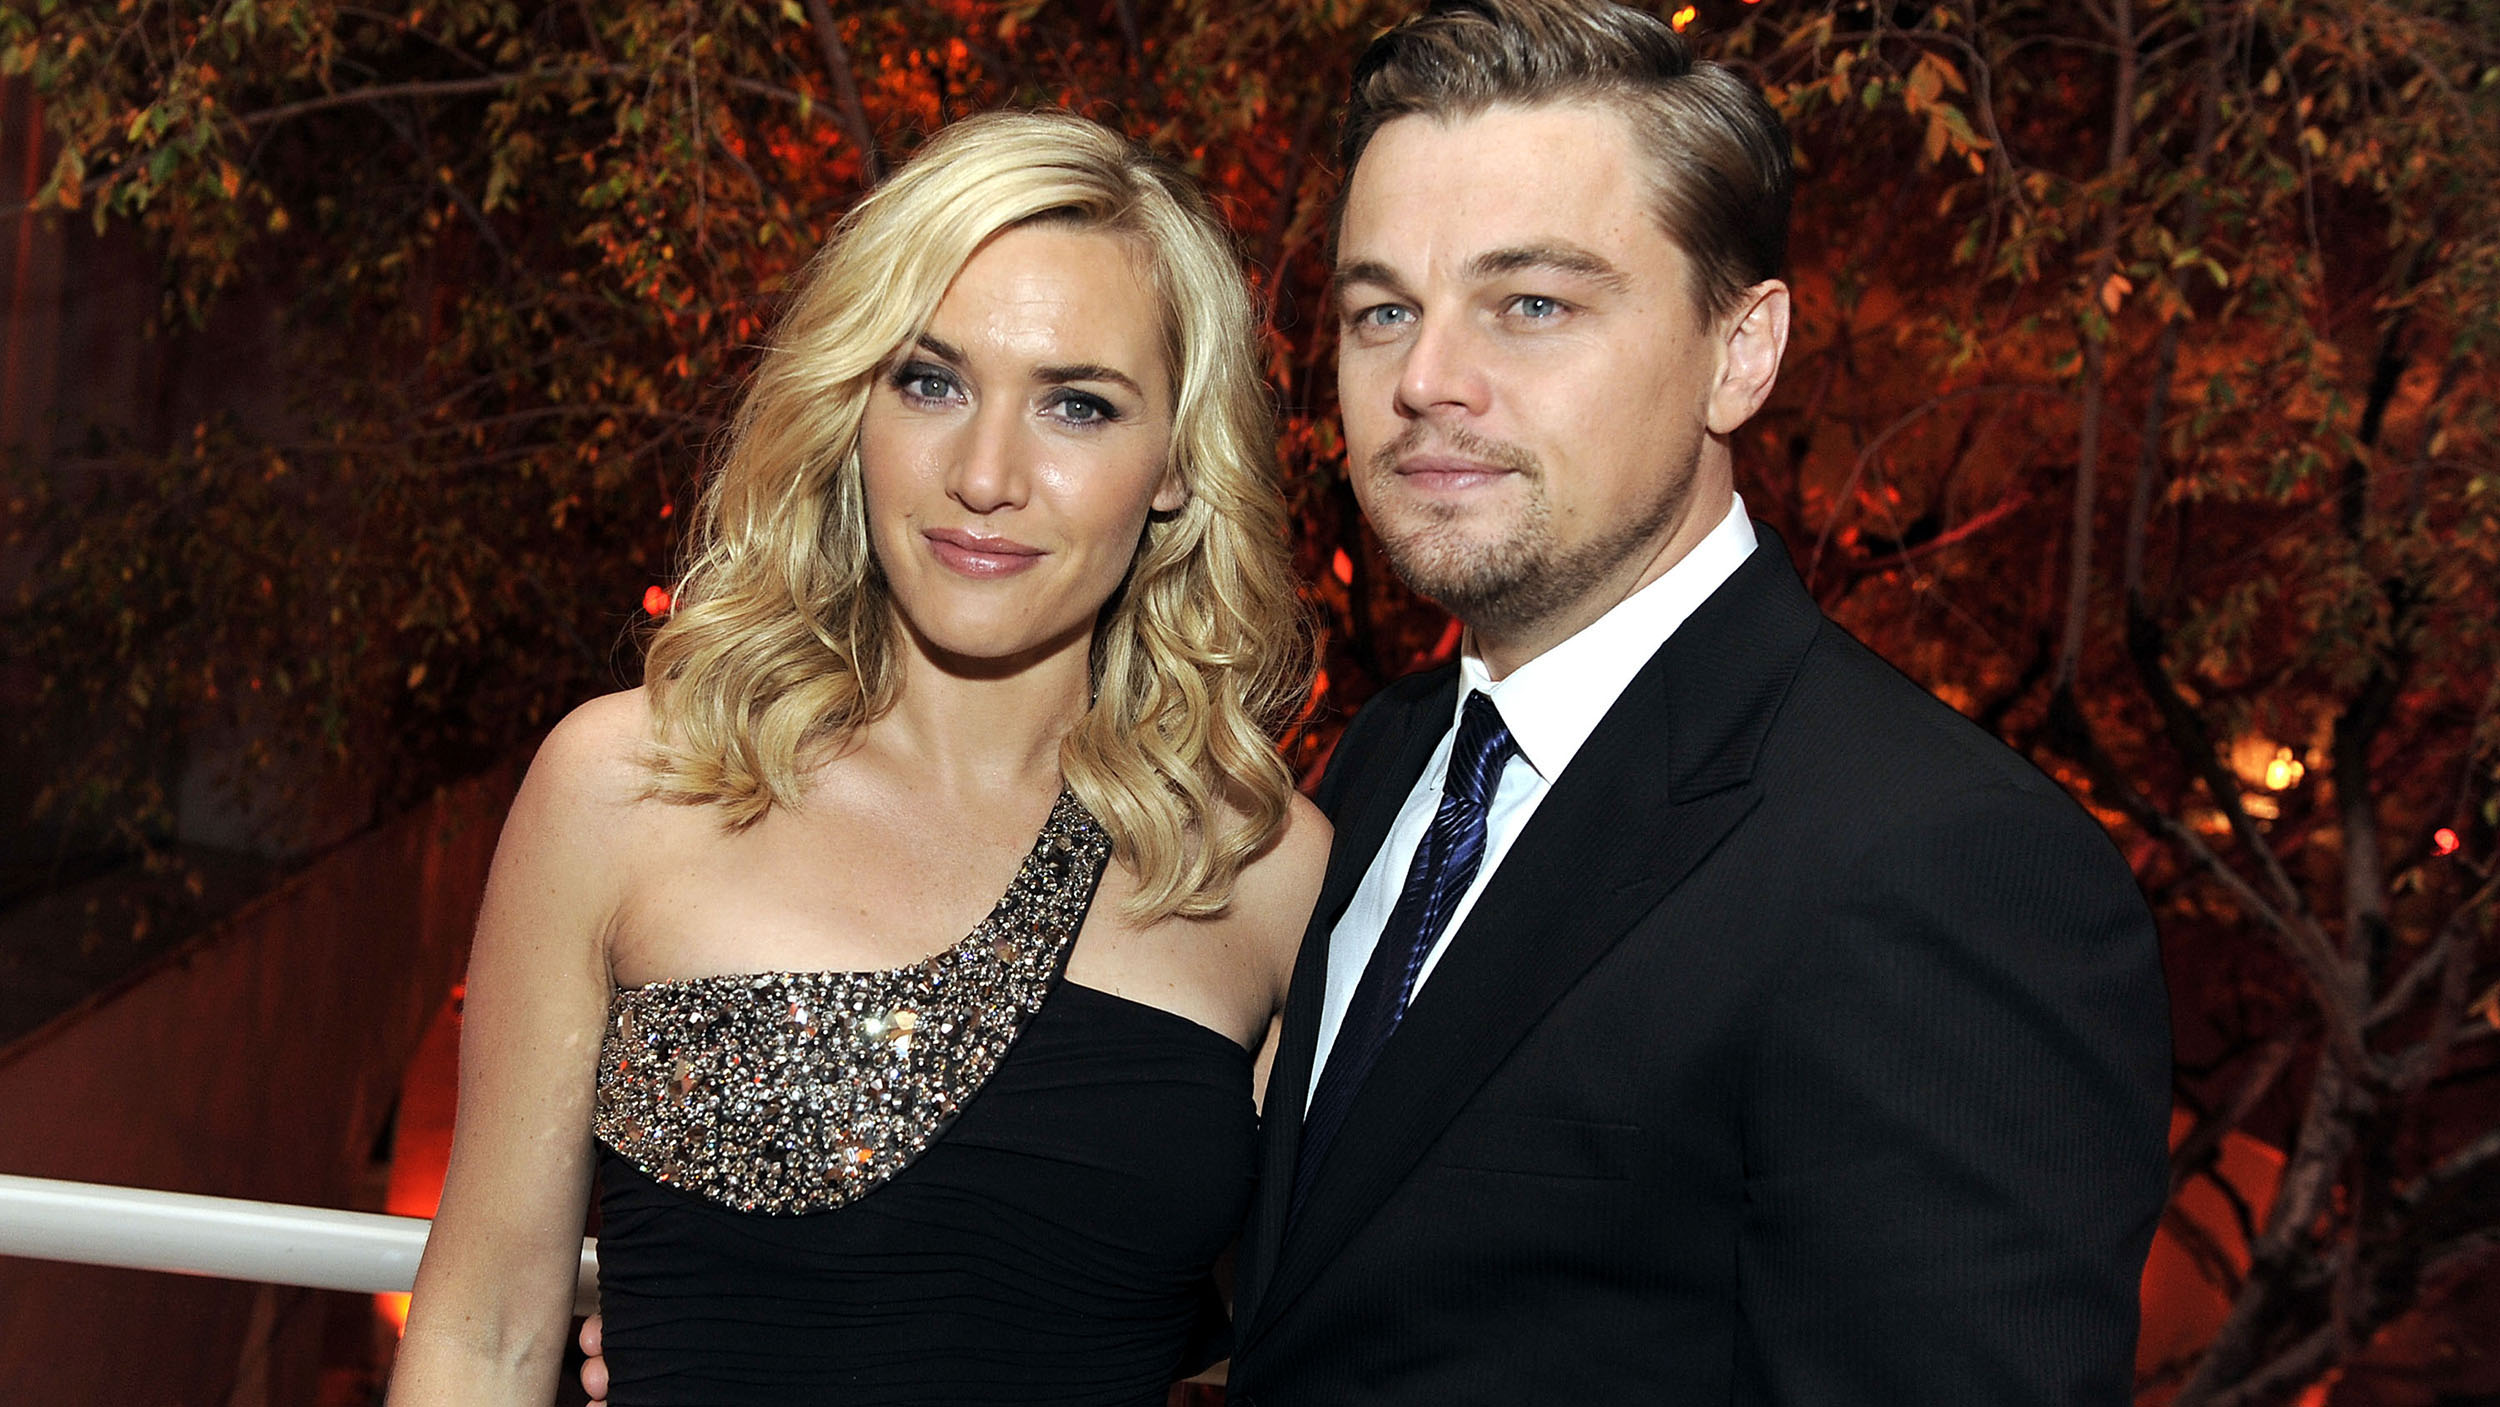 Ahc Of Glendale Dicaprio Winslet Tease Today Fbaeaabadeaabfbefcf